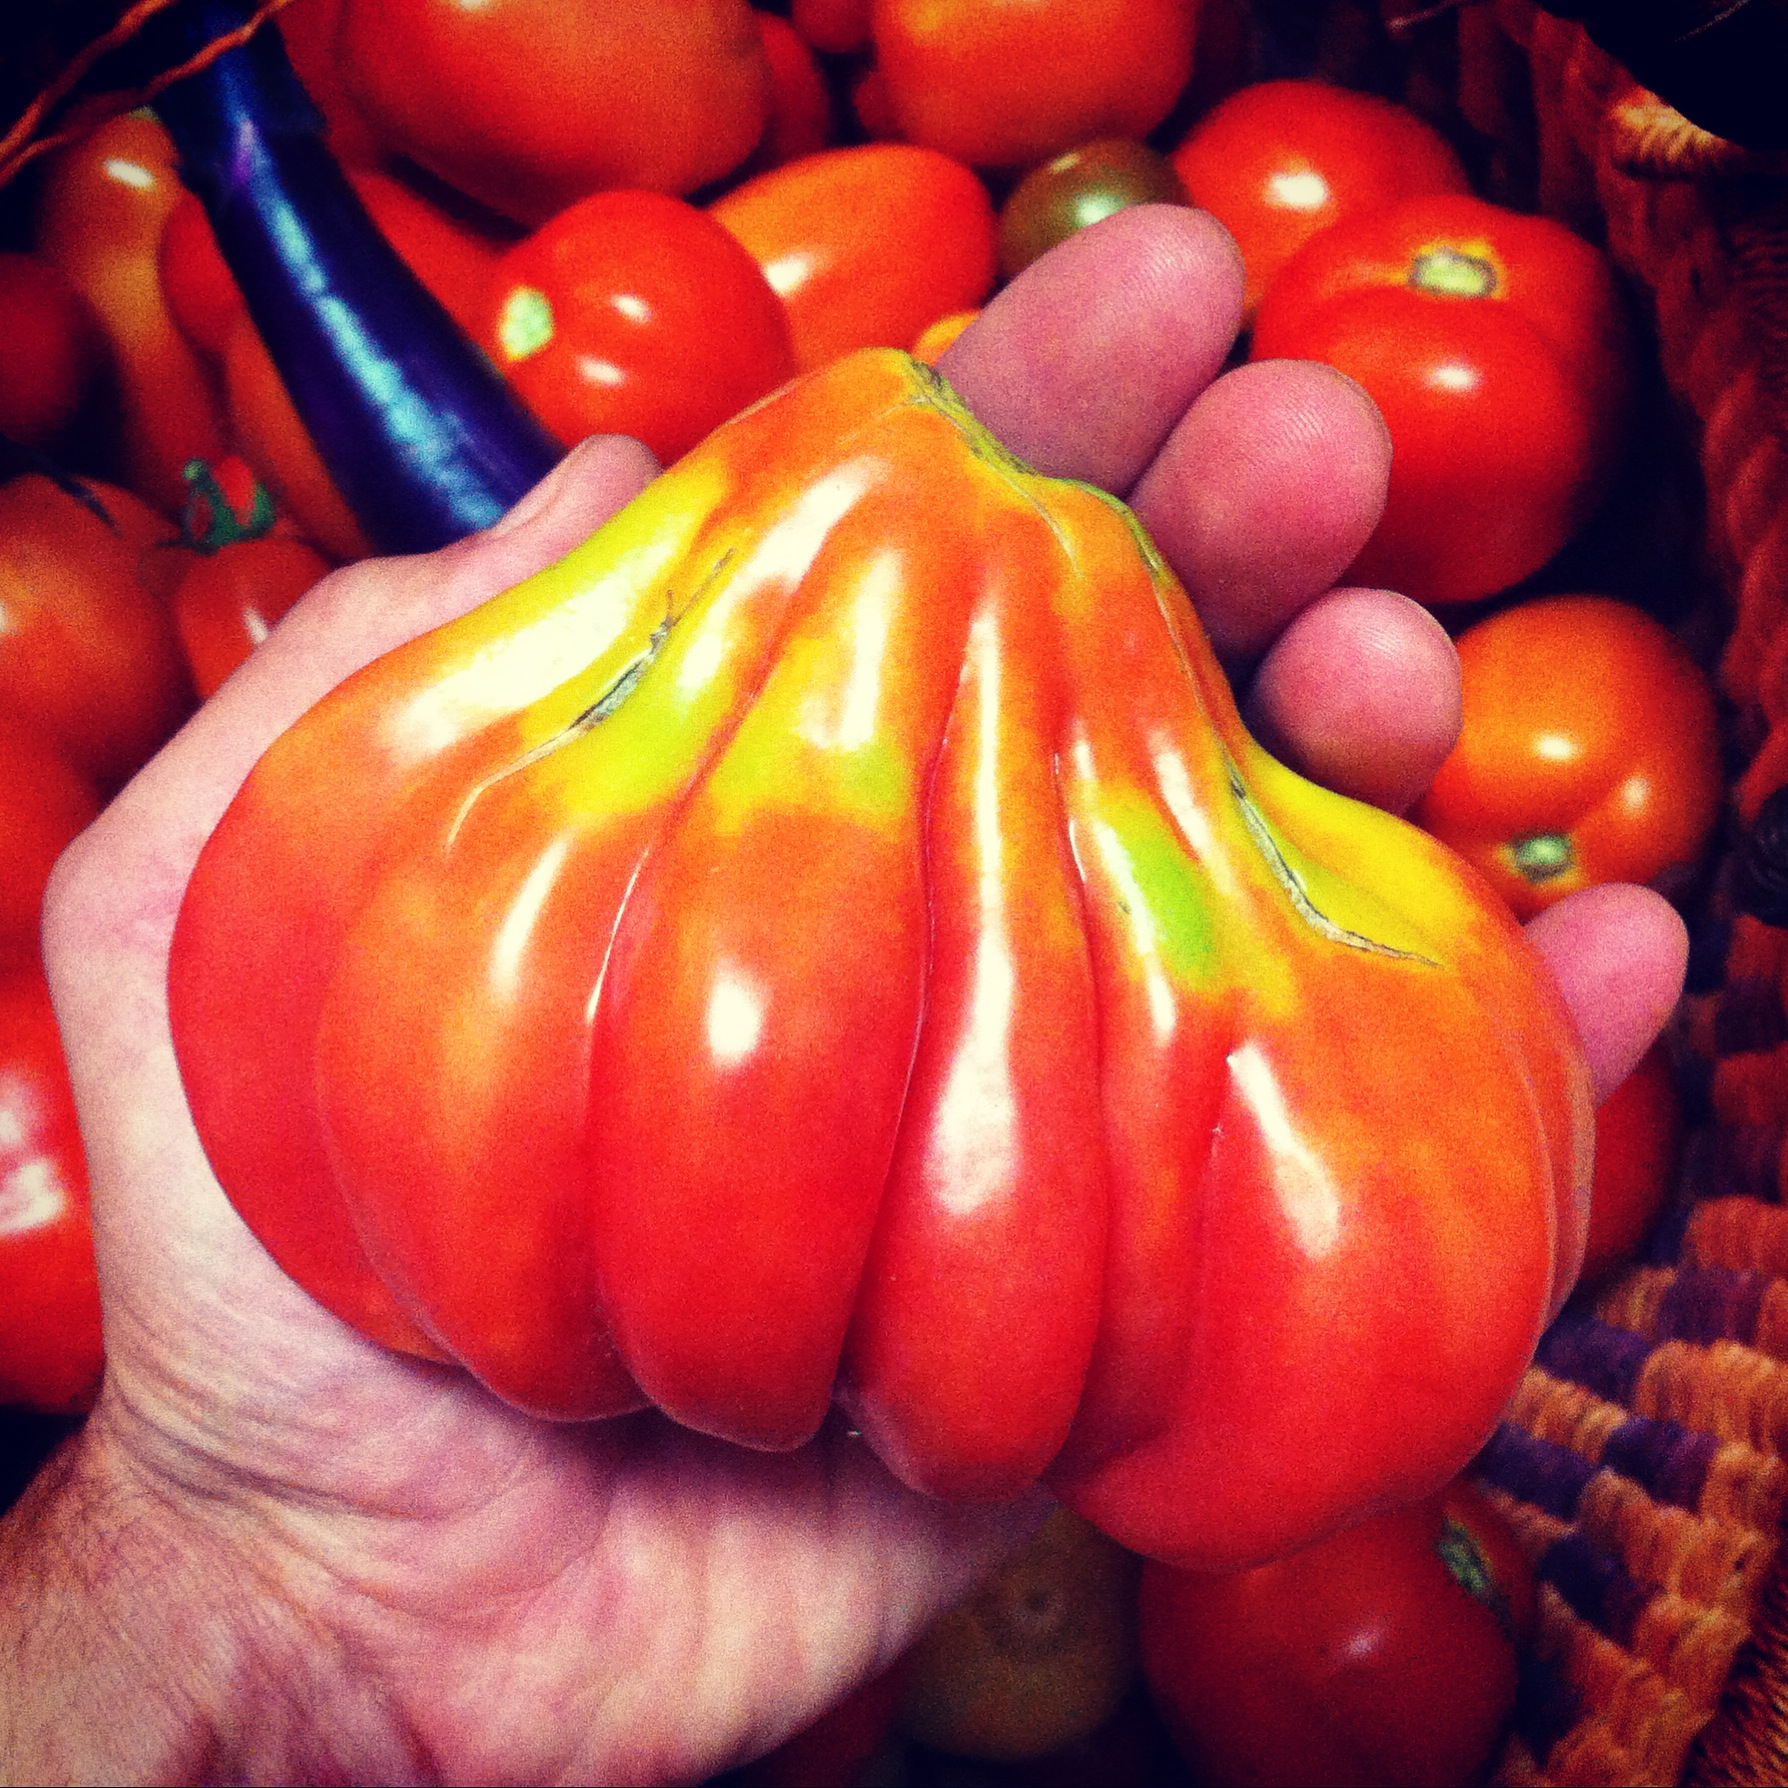 Tlacalula, an heirloom stuffing tomato from Mexico. Cost of the single seed that grew this beauty? $0.001. And it was full of new seeds that we can grow in future years.